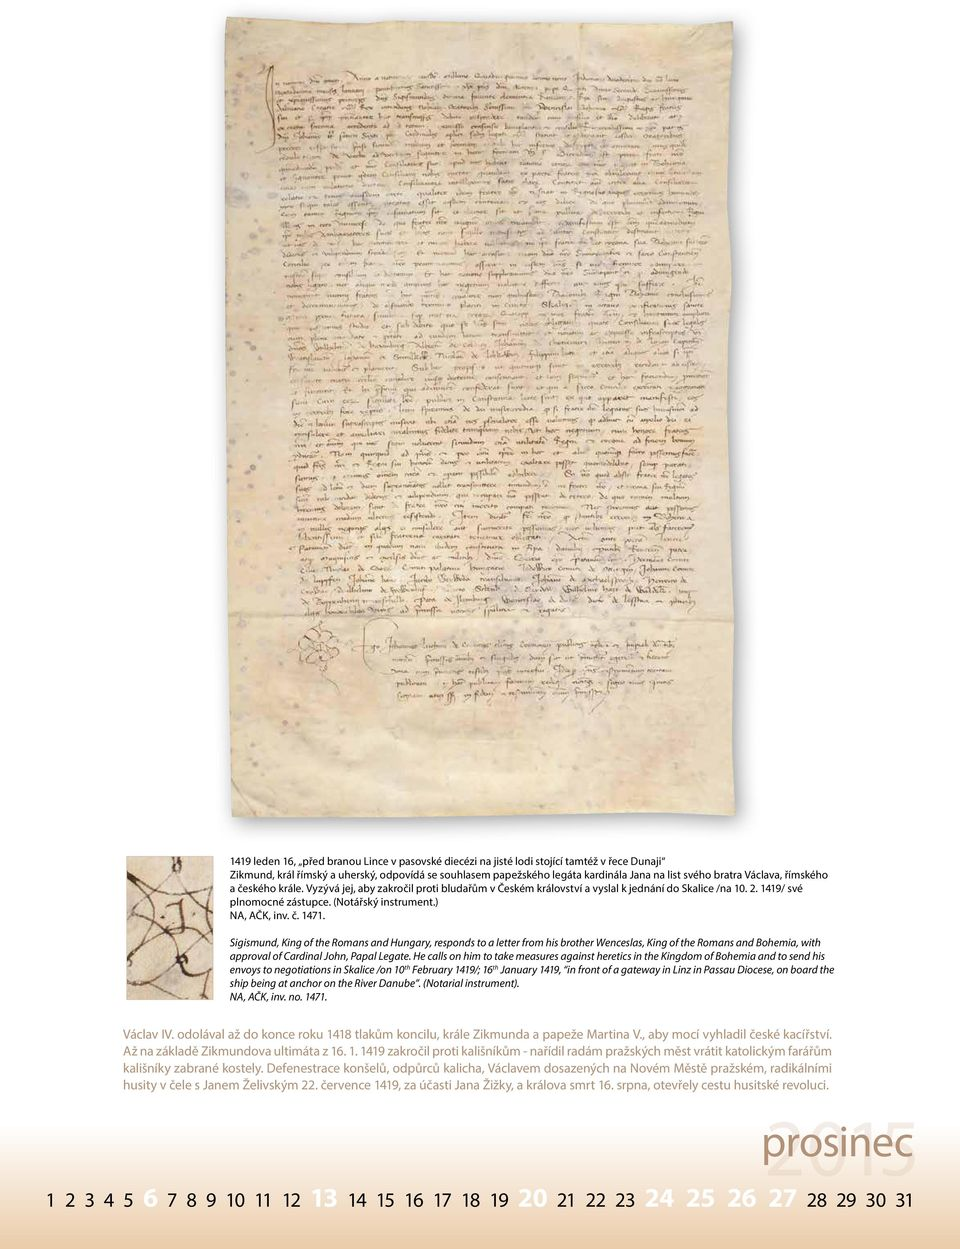 ) NA, AČK, inv. č. 1471. Sigismund, King of the Romans and Hungary, responds to a letter from his brother Wenceslas, King of the Romans and Bohemia, with approval of Cardinal John, Papal Legate.